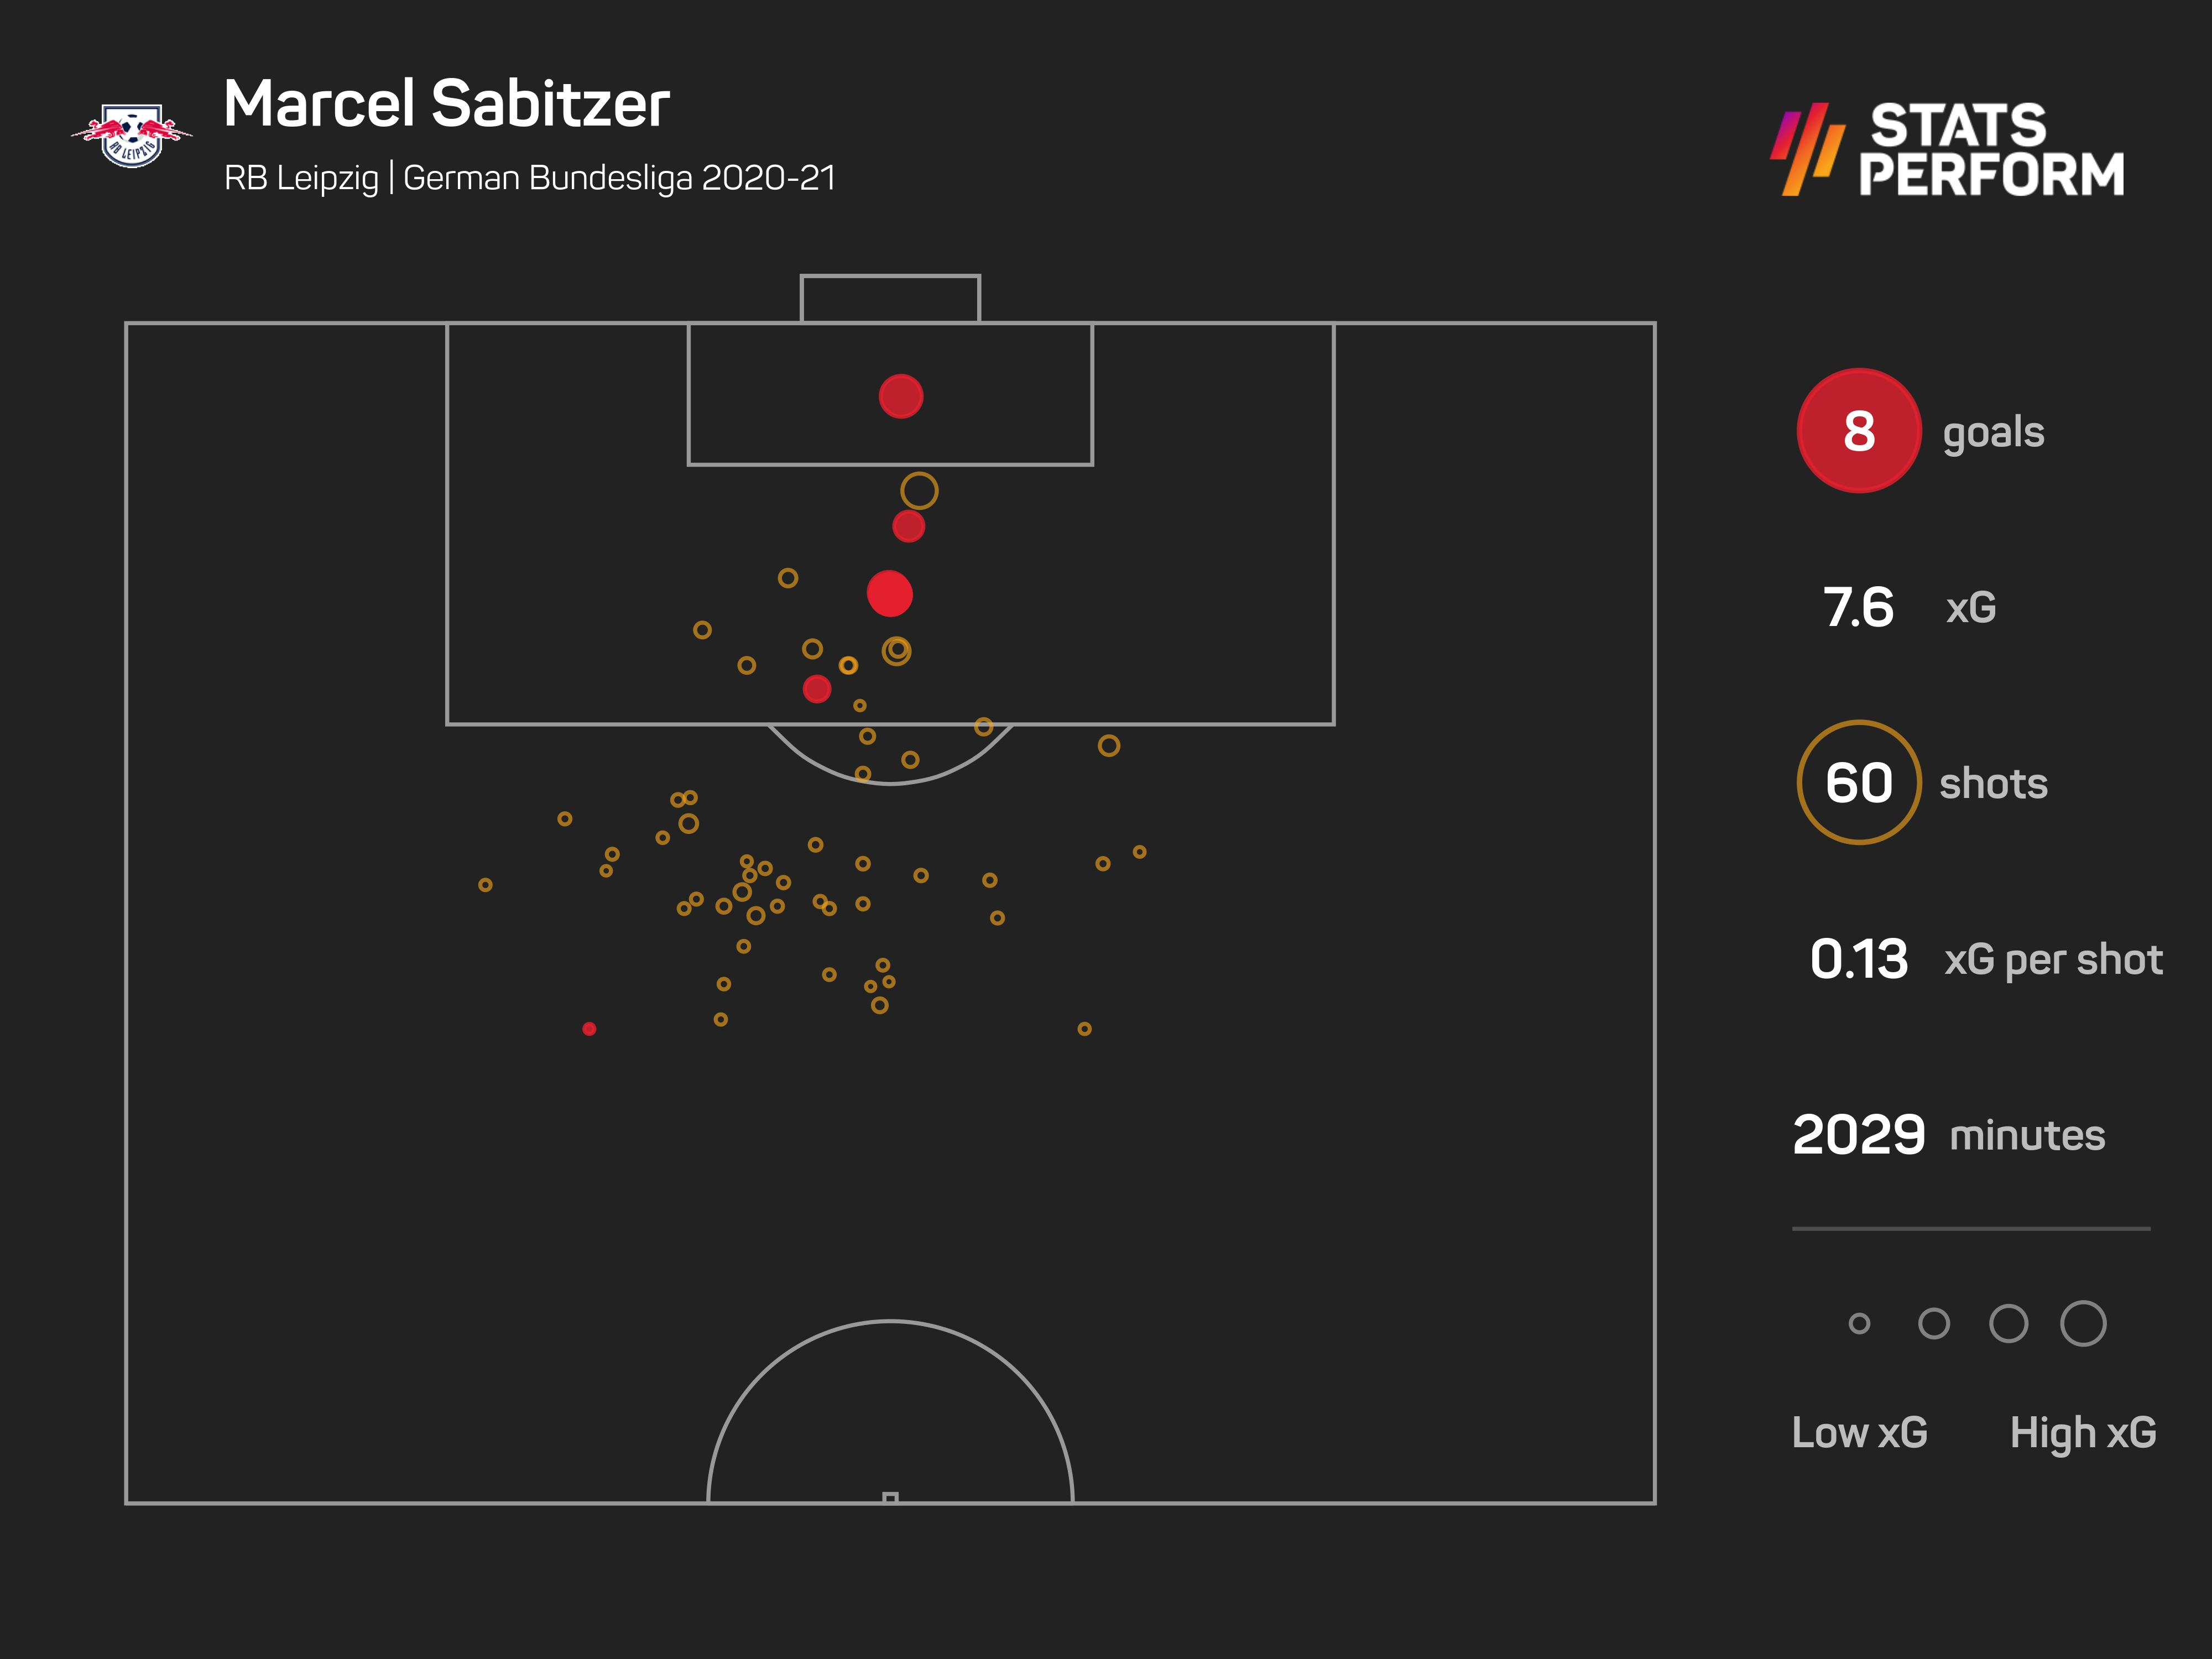 Marcel Sabitzer had a strong season for RB Leipzig